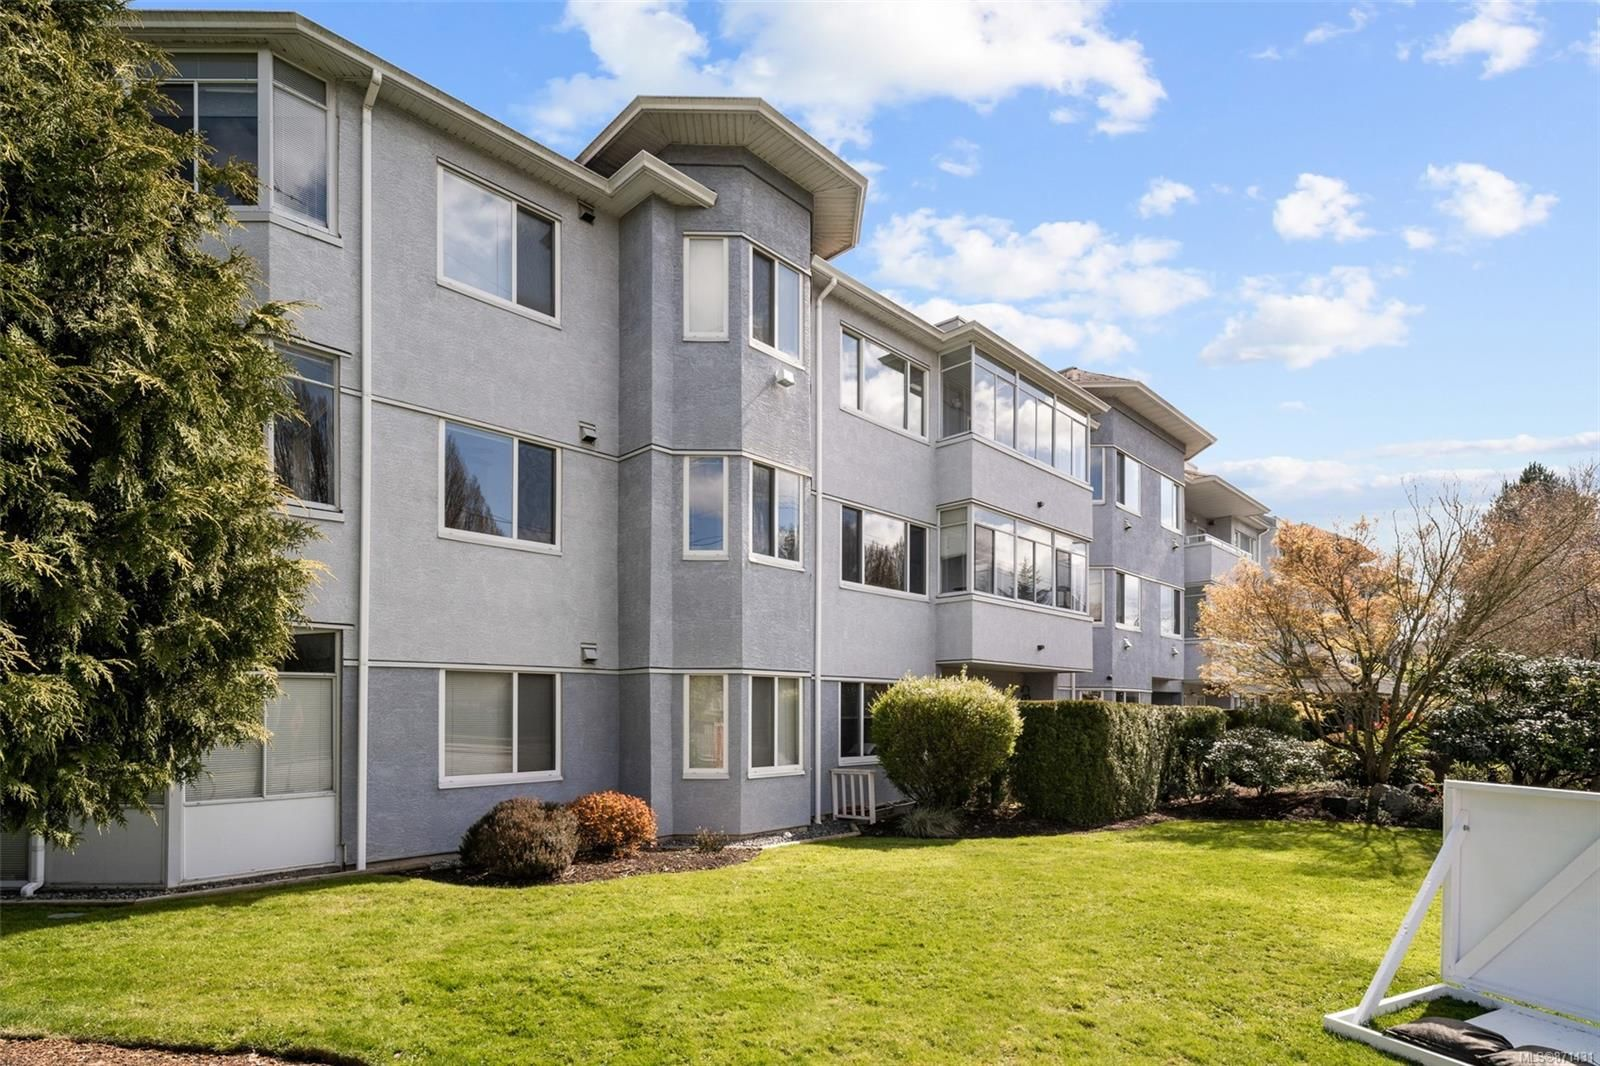 Main Photo: 204 3931 Shelbourne St in : SE Mt Tolmie Condo for sale (Saanich East)  : MLS®# 871431